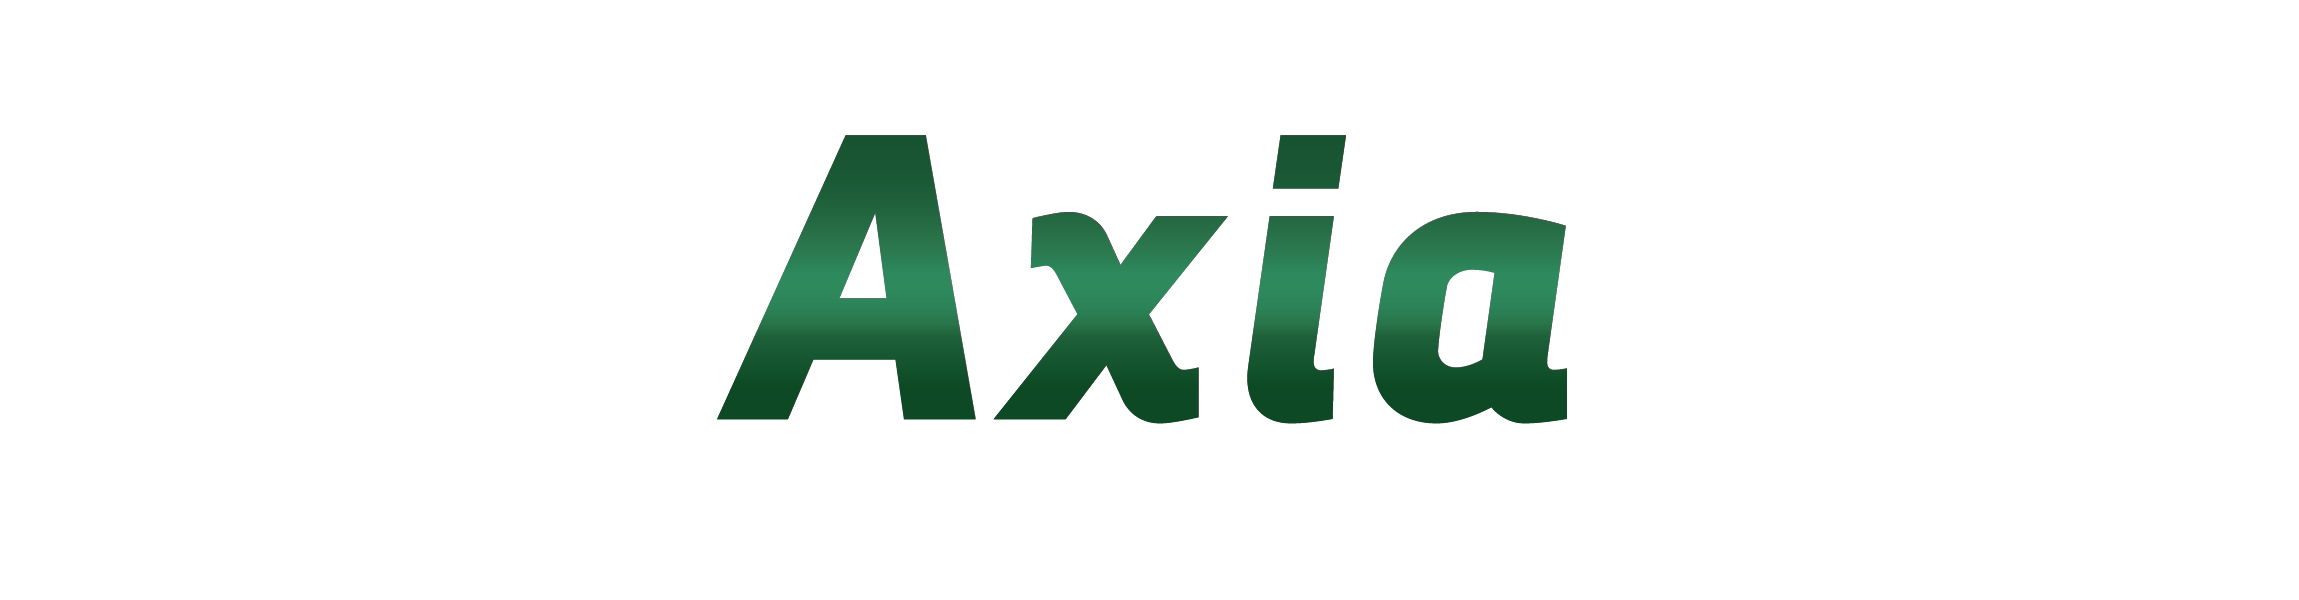 AxiabigCentered